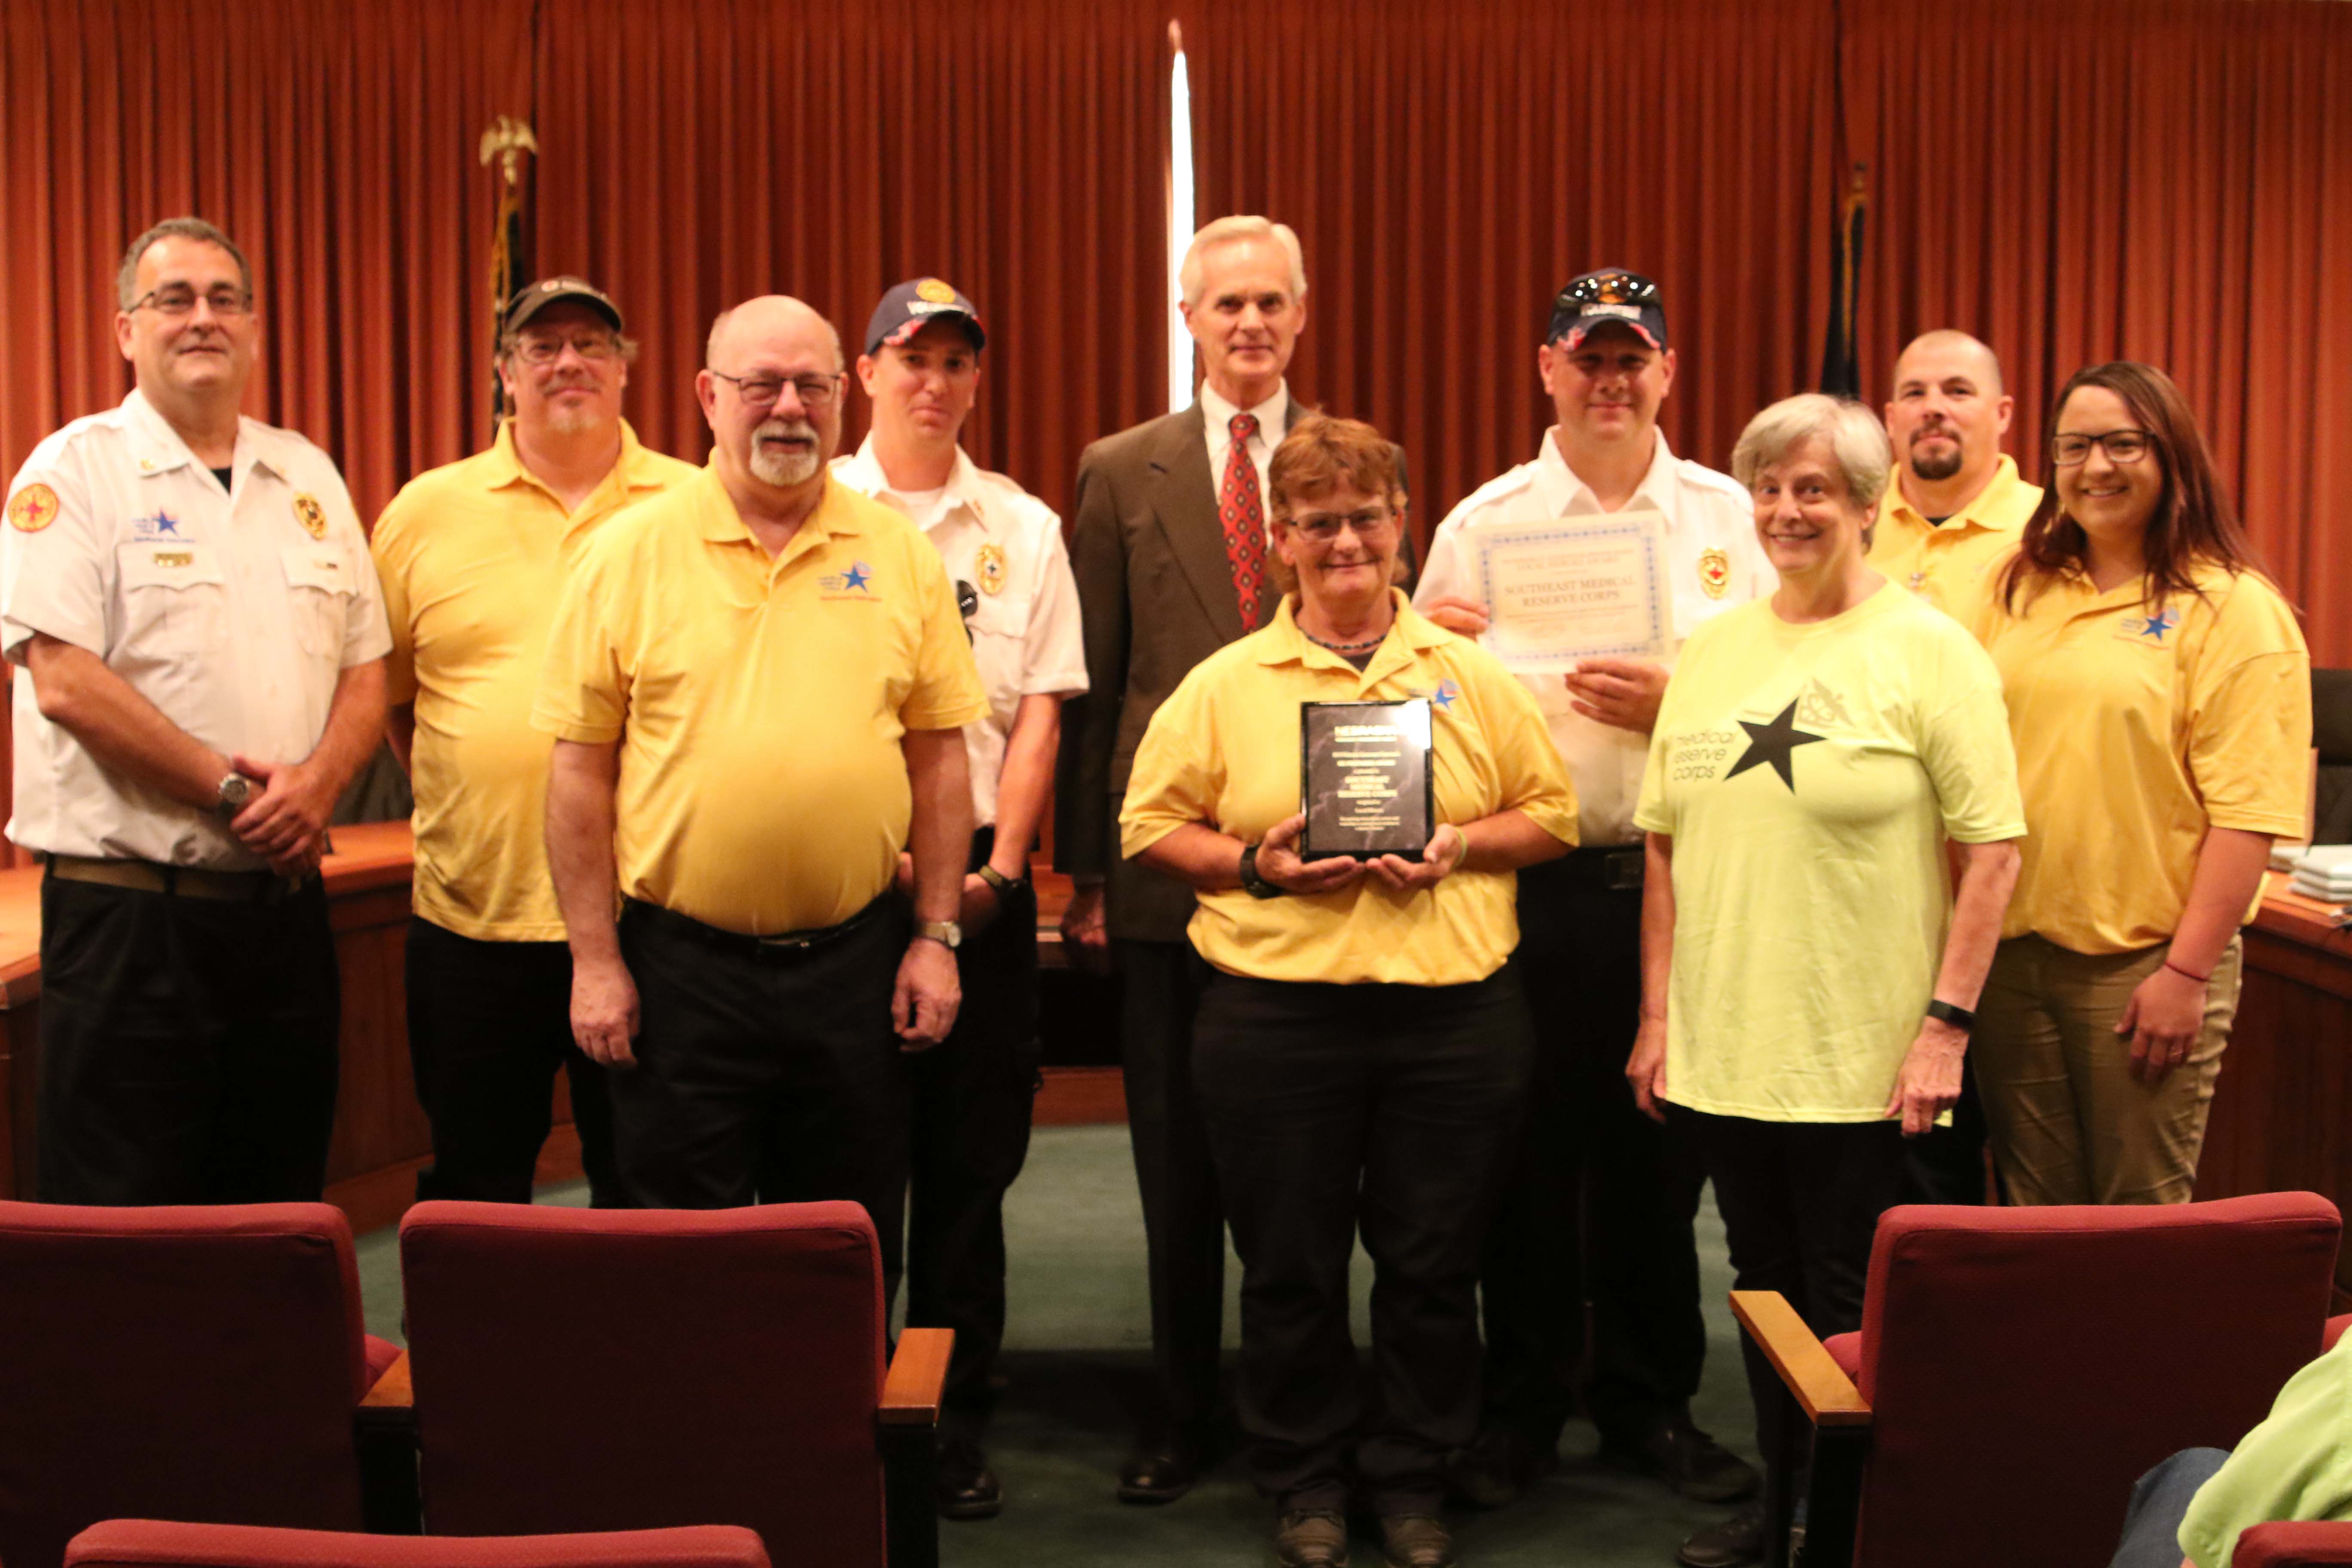 The Medical Reserve Corps of Southeast Nebraska was recognized by Lt. Gov. Mike Foley with a Local Heroes Award. Pictured from left are: Bill Montz, Kevin Rahe, Dennis Schmidt, Cody Meredith, Lt. Gov. Foley, Mari Flanagan, William Kimsey, Janice Jones, Richard Steckly and Ashley Douthit.